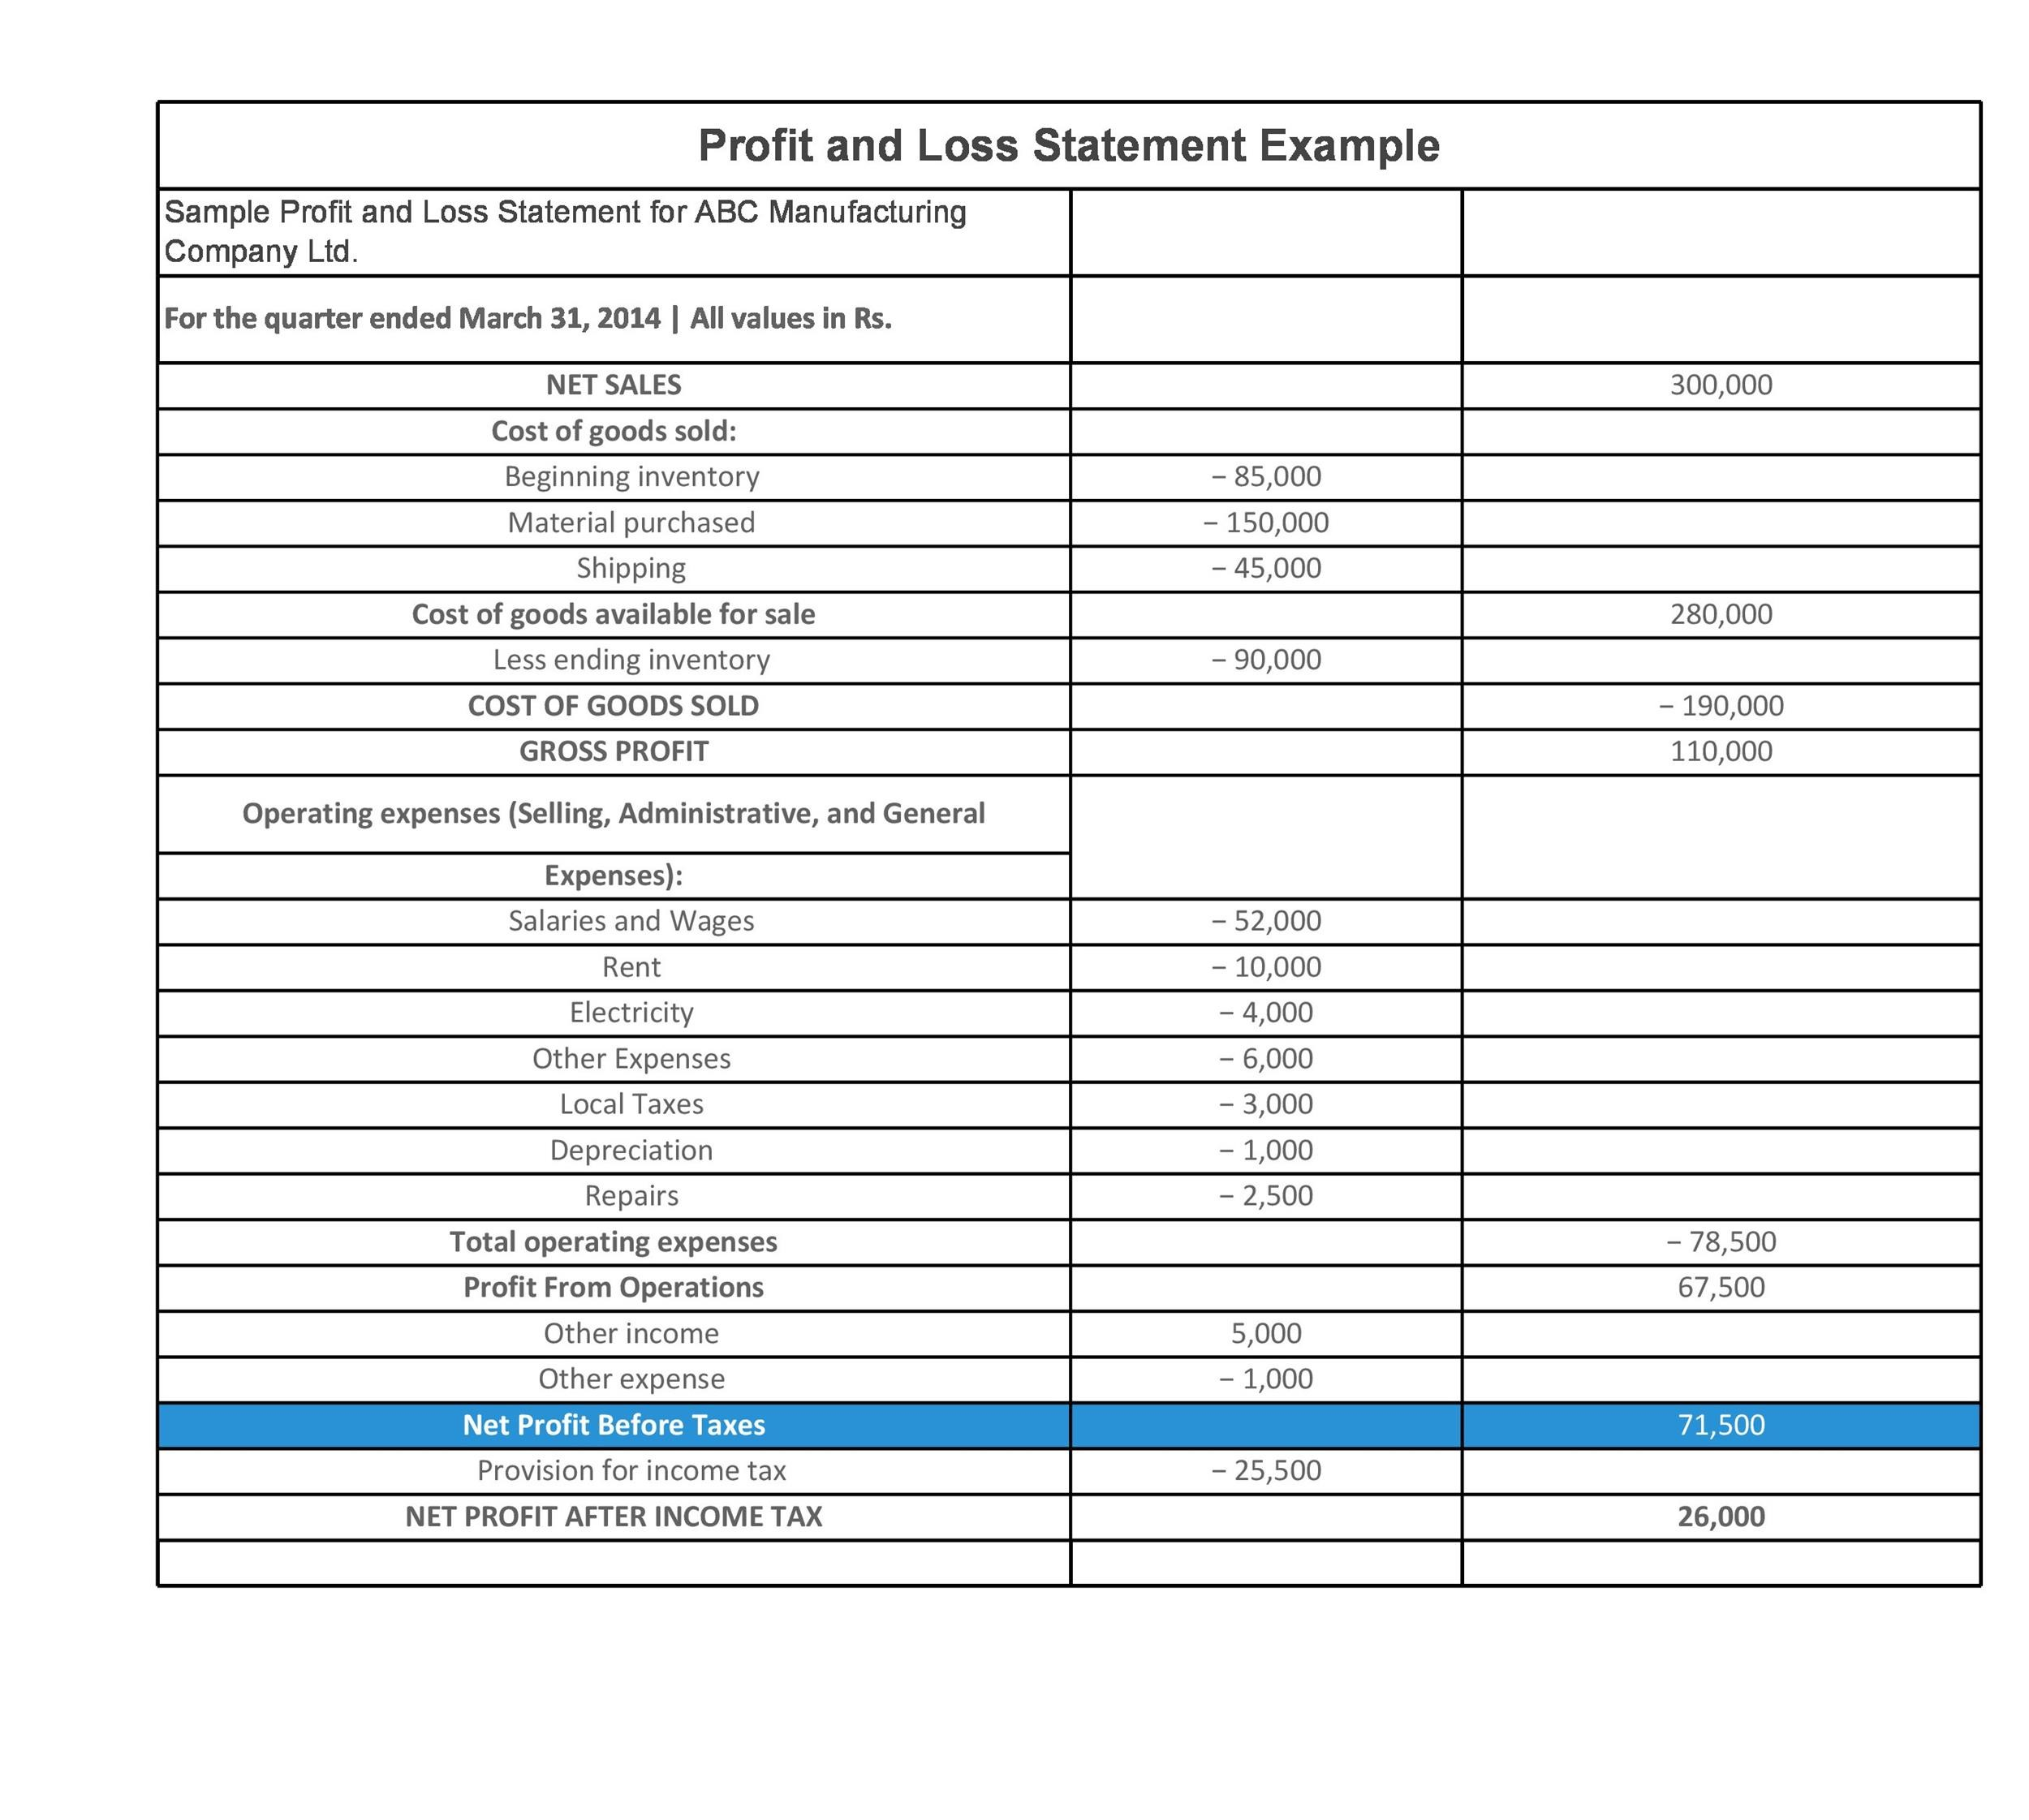 35 Profit and Loss Statement Templates Forms – Basic Profit and Loss Statement Template